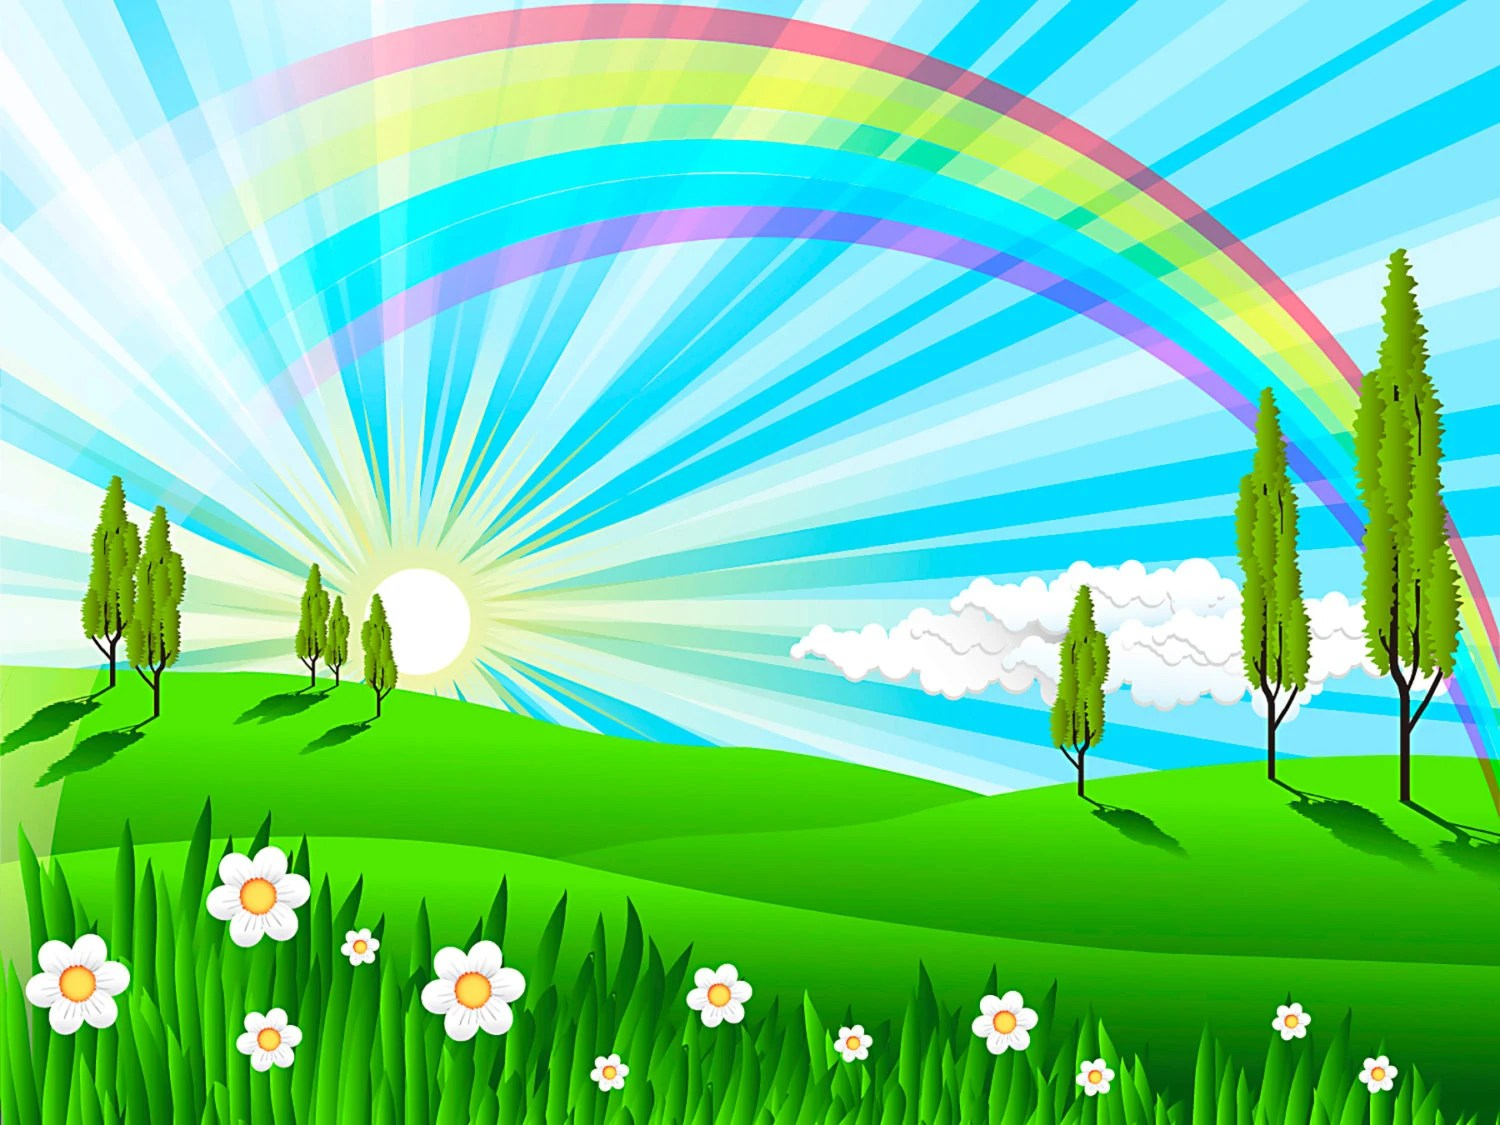 Rainbow Wall Decal Field Nature Artwork Cartoon Scenery Wall